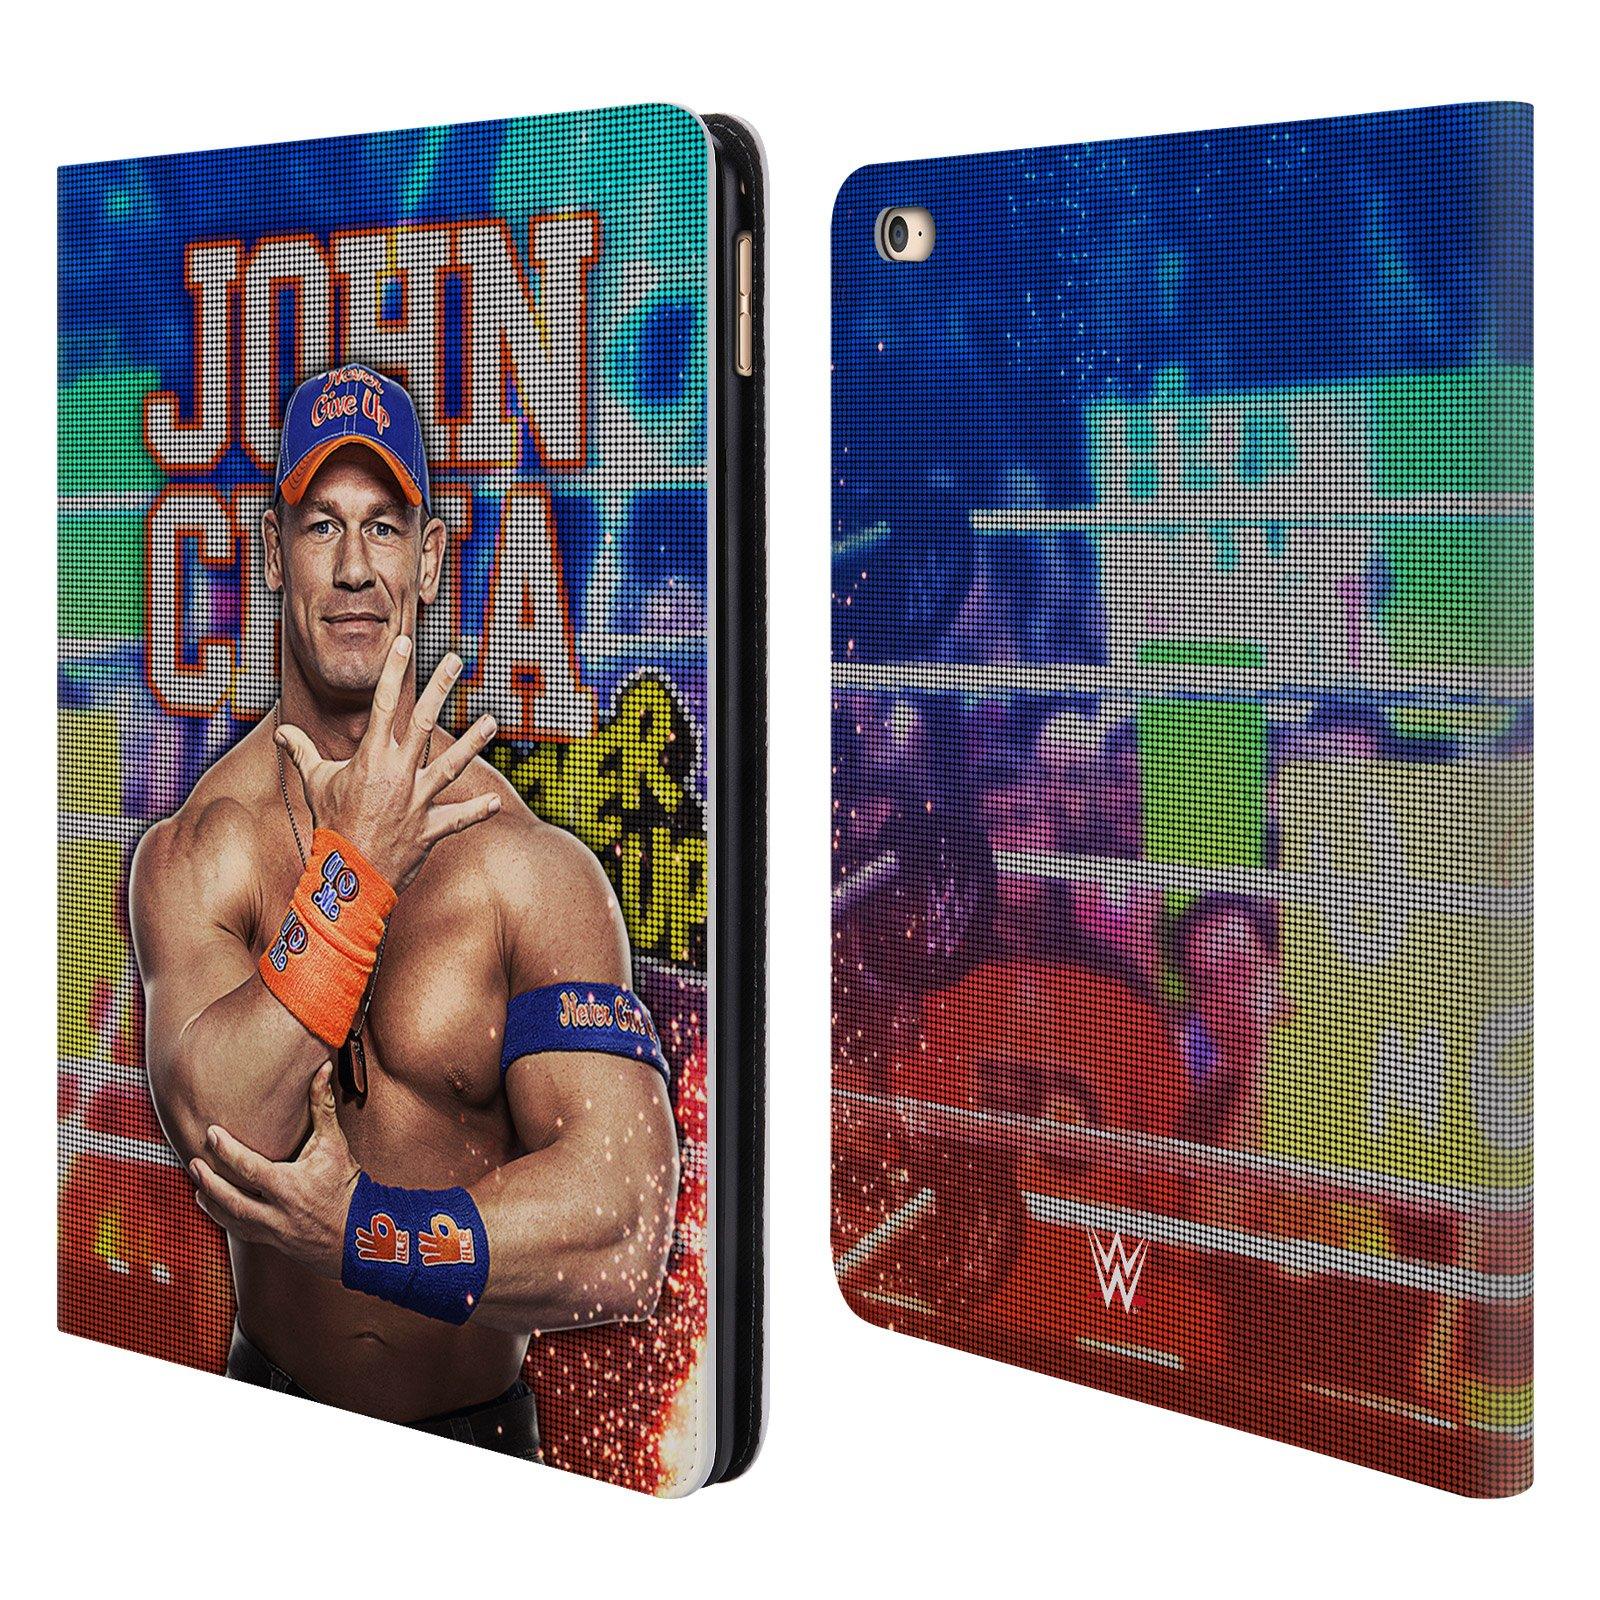 Official WWE LED Image 2017 John Cena Leather Book Wallet Case Cover Compatible for iPad Air 2 (2014)